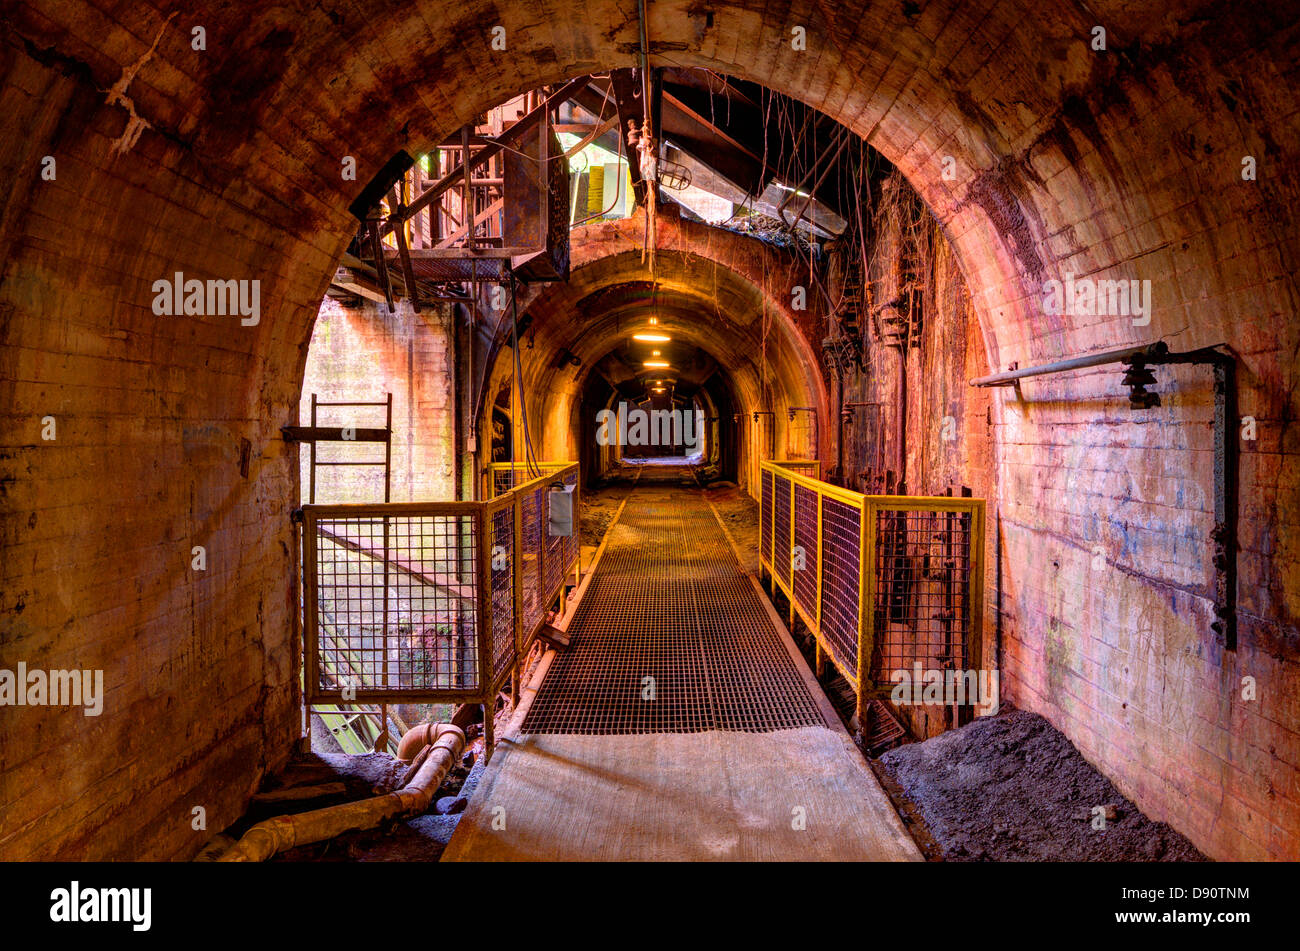 Factory tunnel with dramatic grittiness. - Stock Image